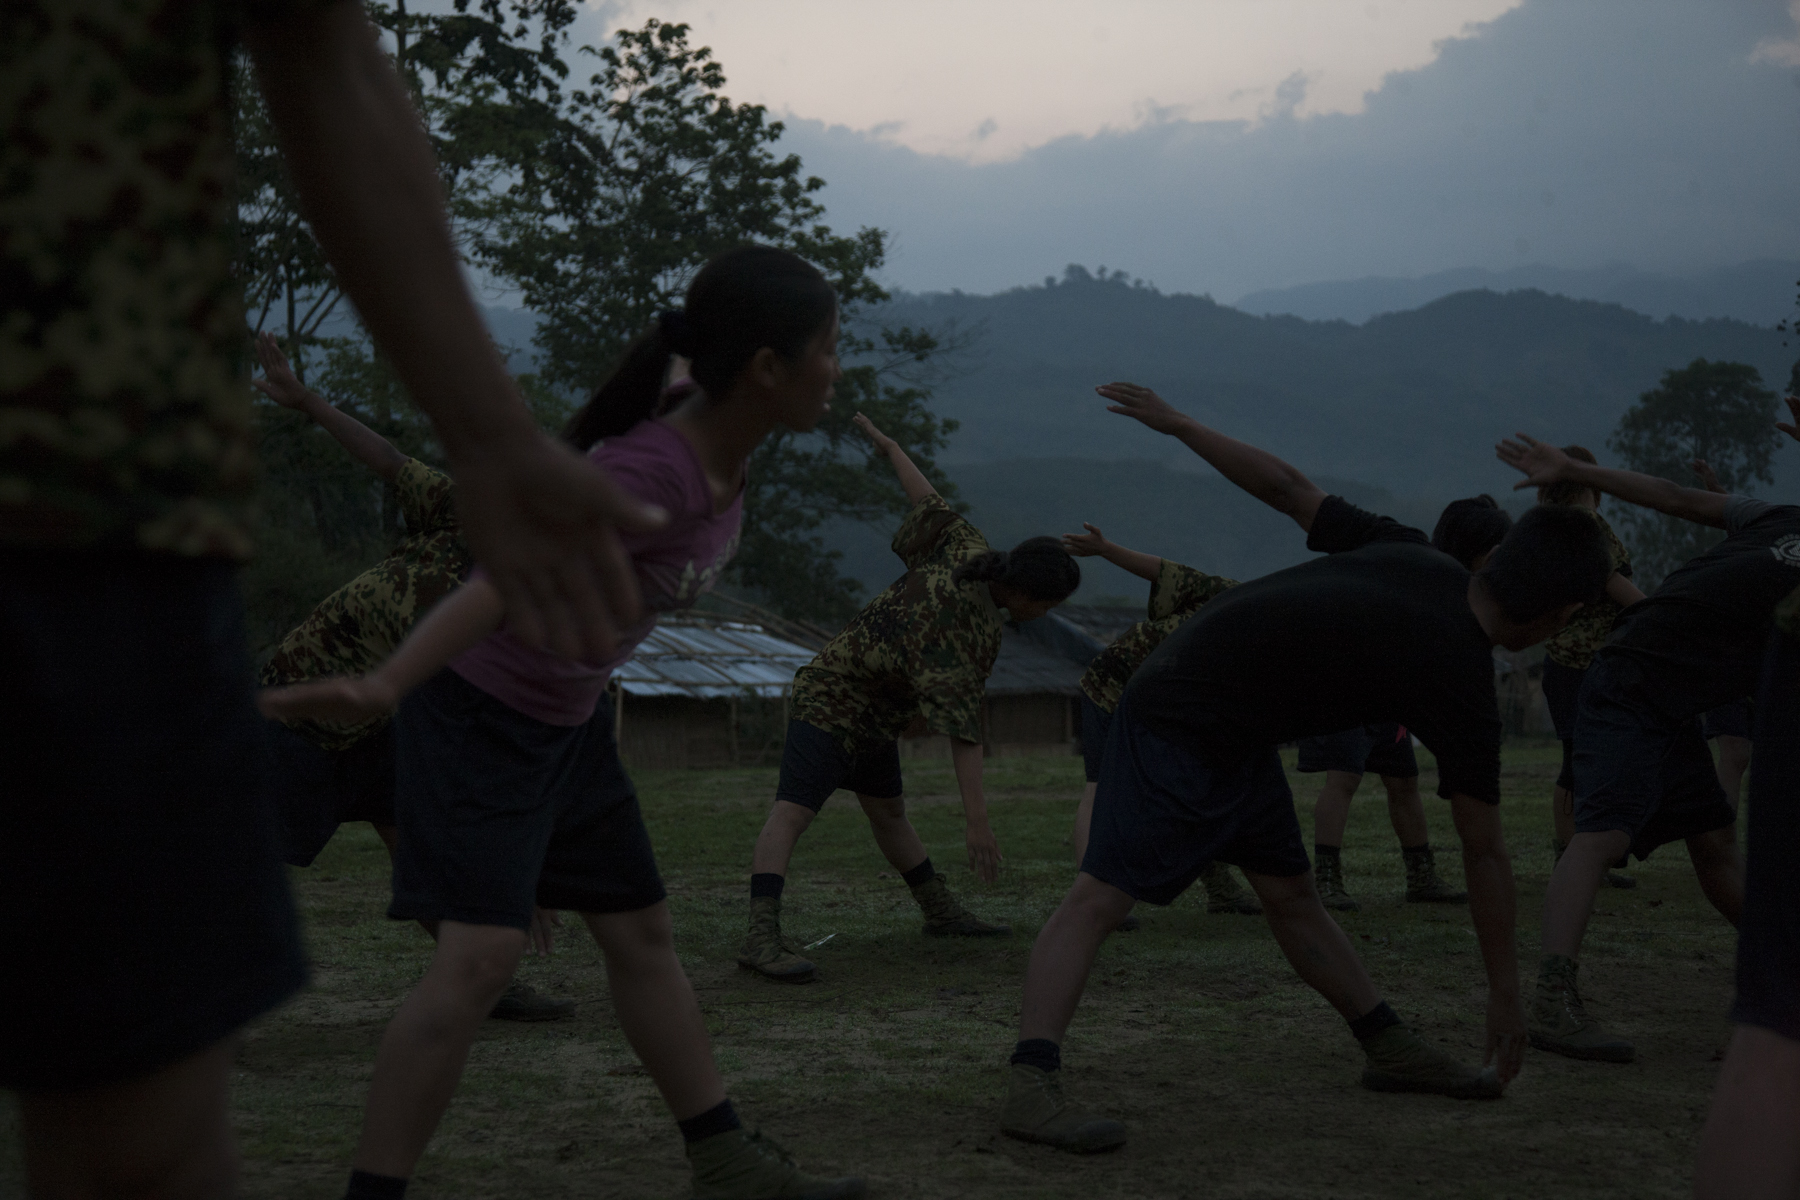 For two months basic military training began every morning before sunrise at the KIA's military base outside of Laiza, Kachin State, Myanmar, May 21, 2013.